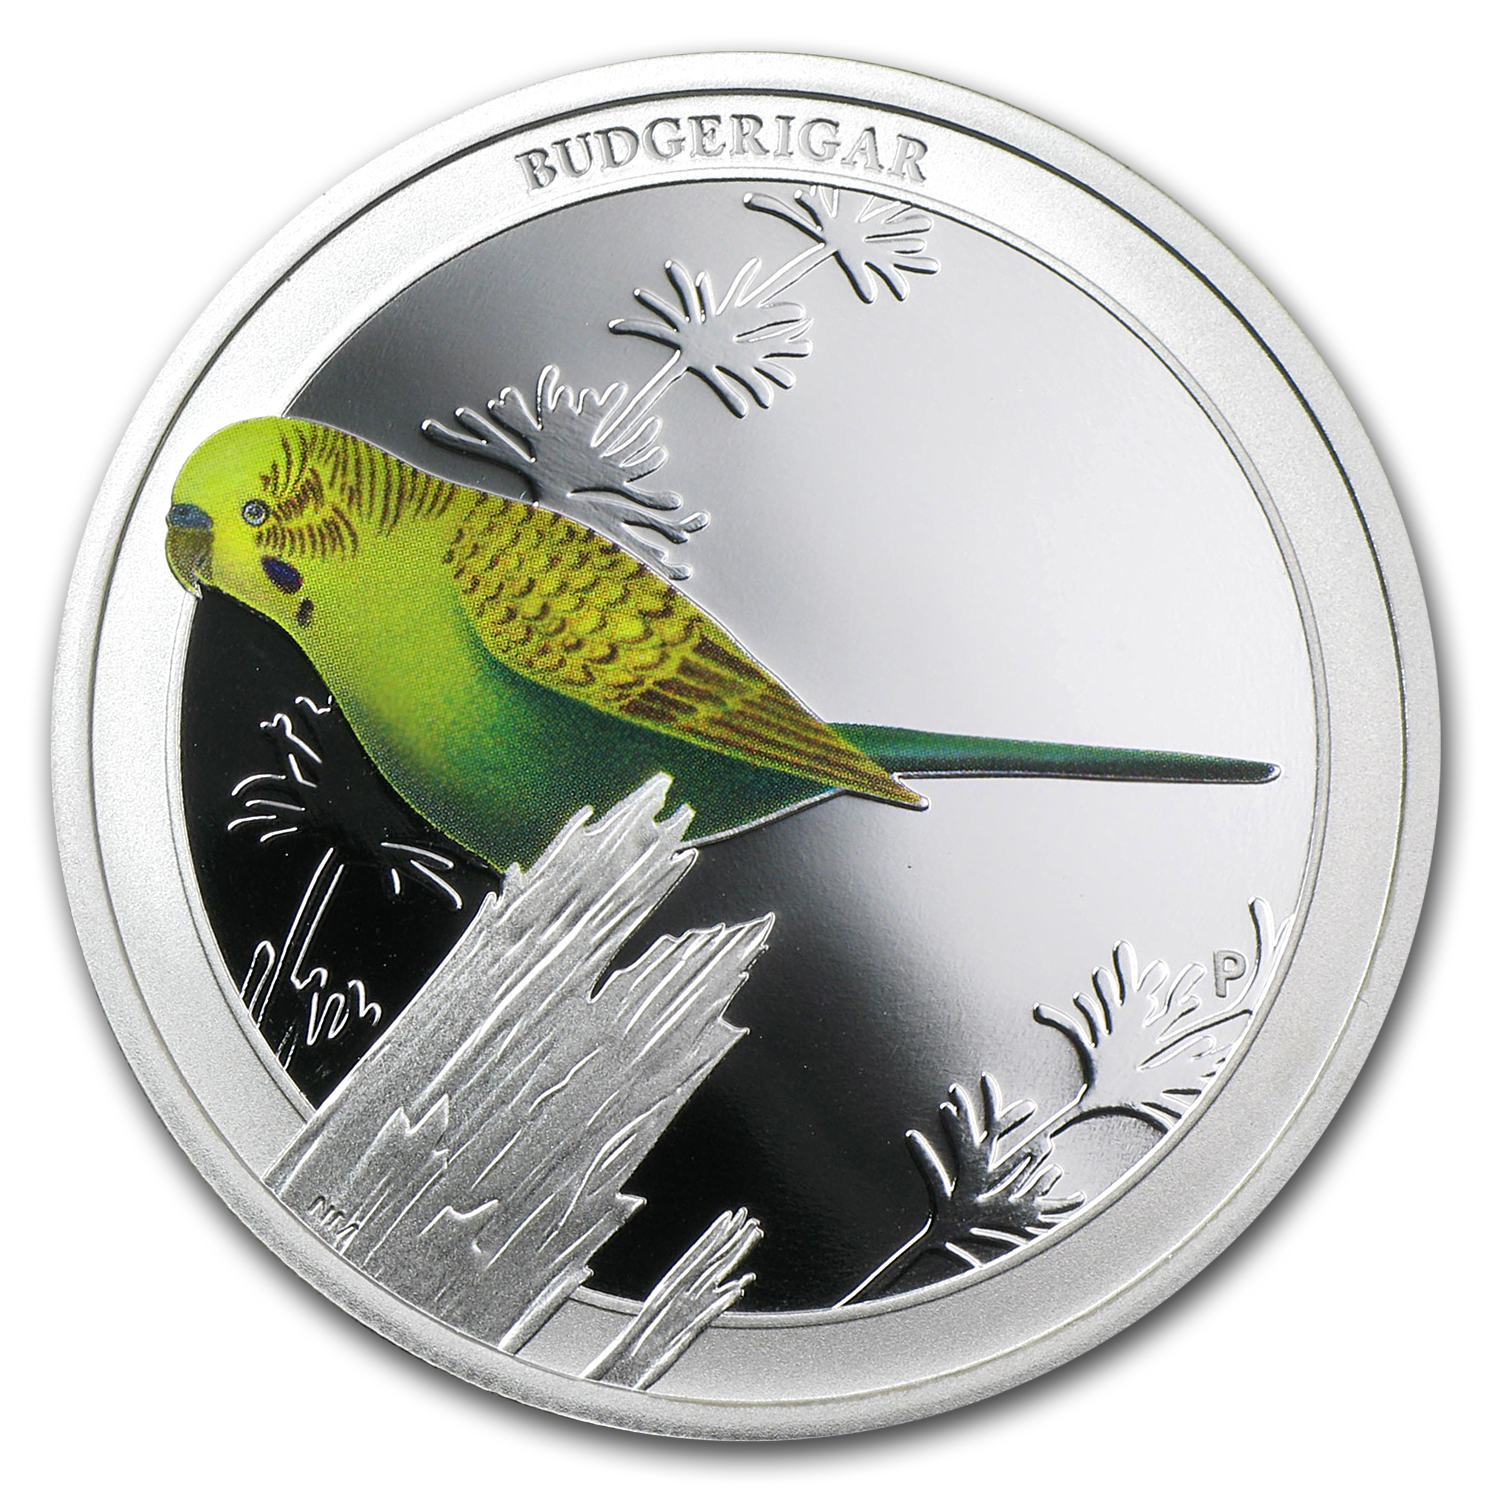 2013 Australia 1/2 oz Silver Budgerigar Proof